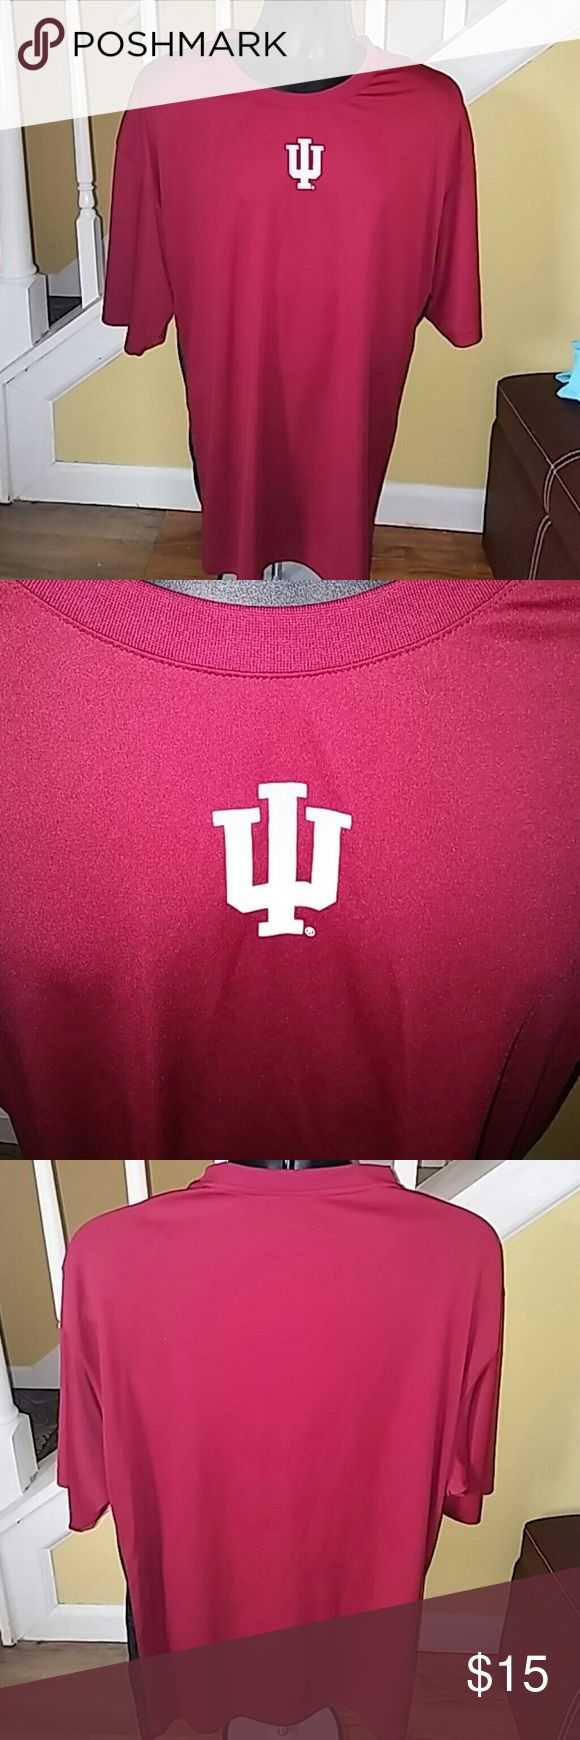 Men's IU Campus Heritage XXL Tshirt Excellent condition. Red,gray,black design up both sides (pictured). Campus Heritage  Shirts Tees - Short Sleeve